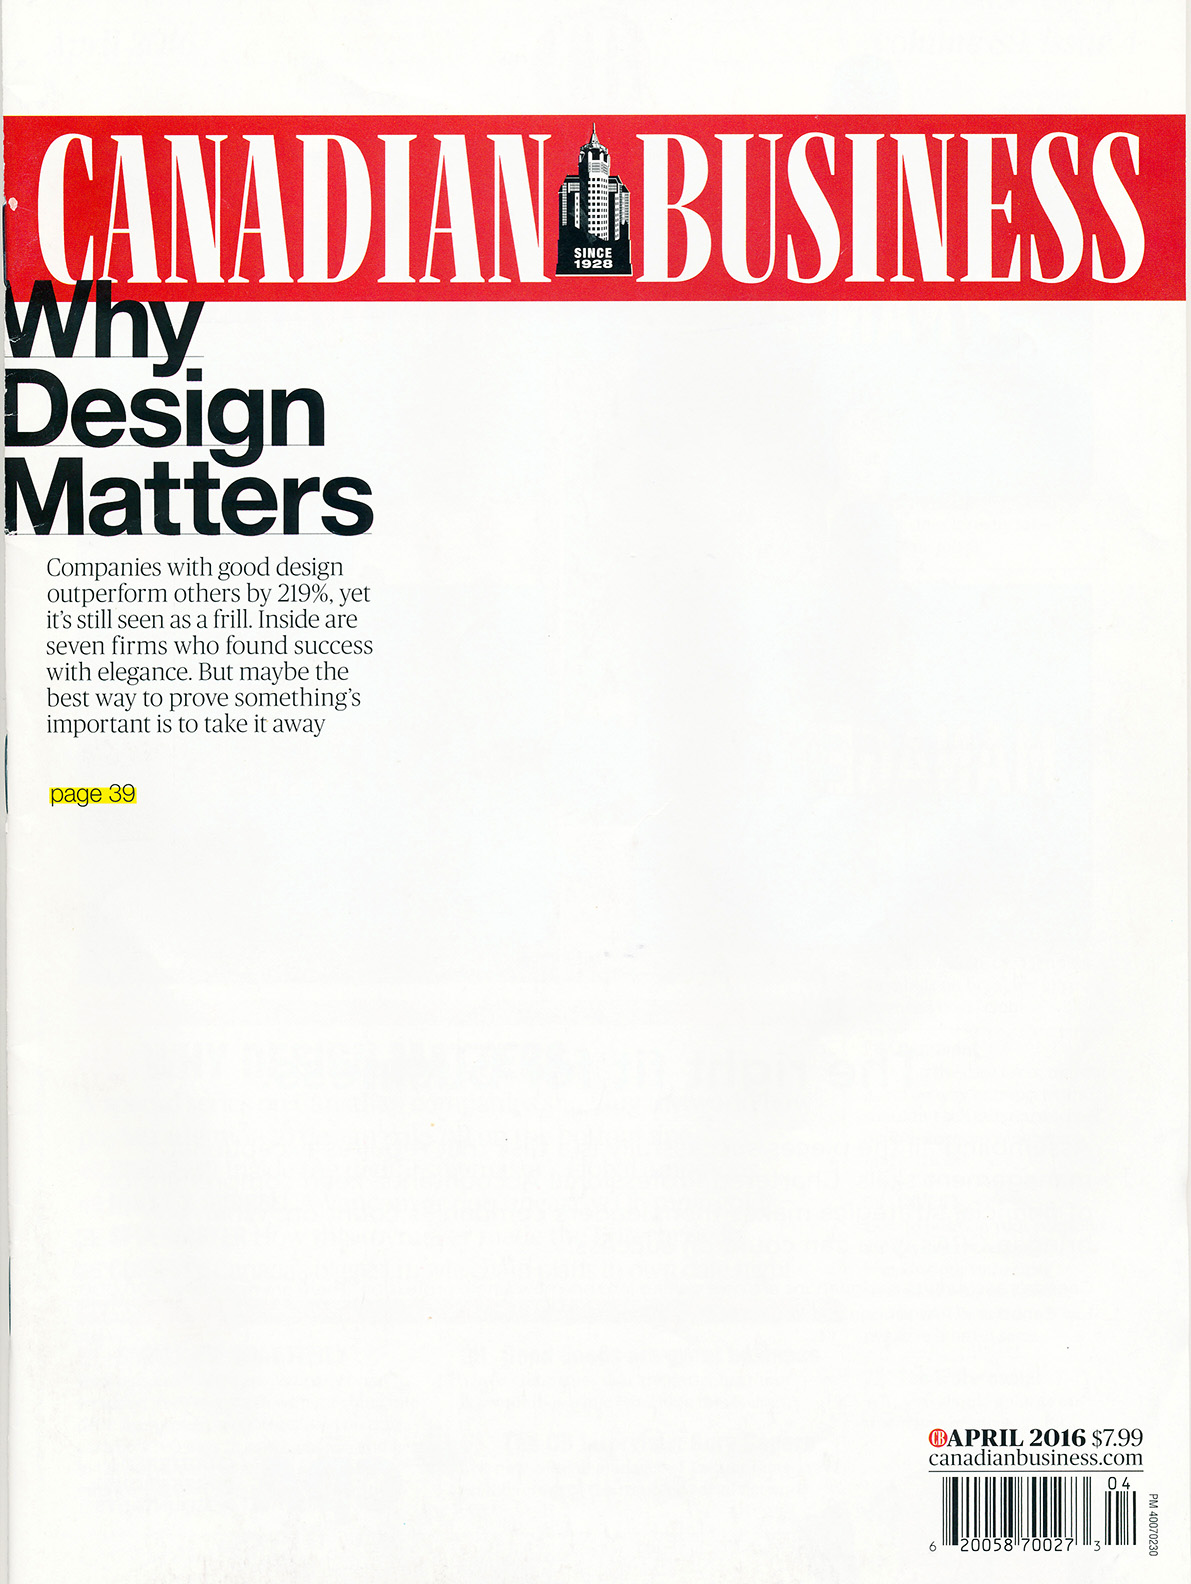 Canadian Business - Design.jpg